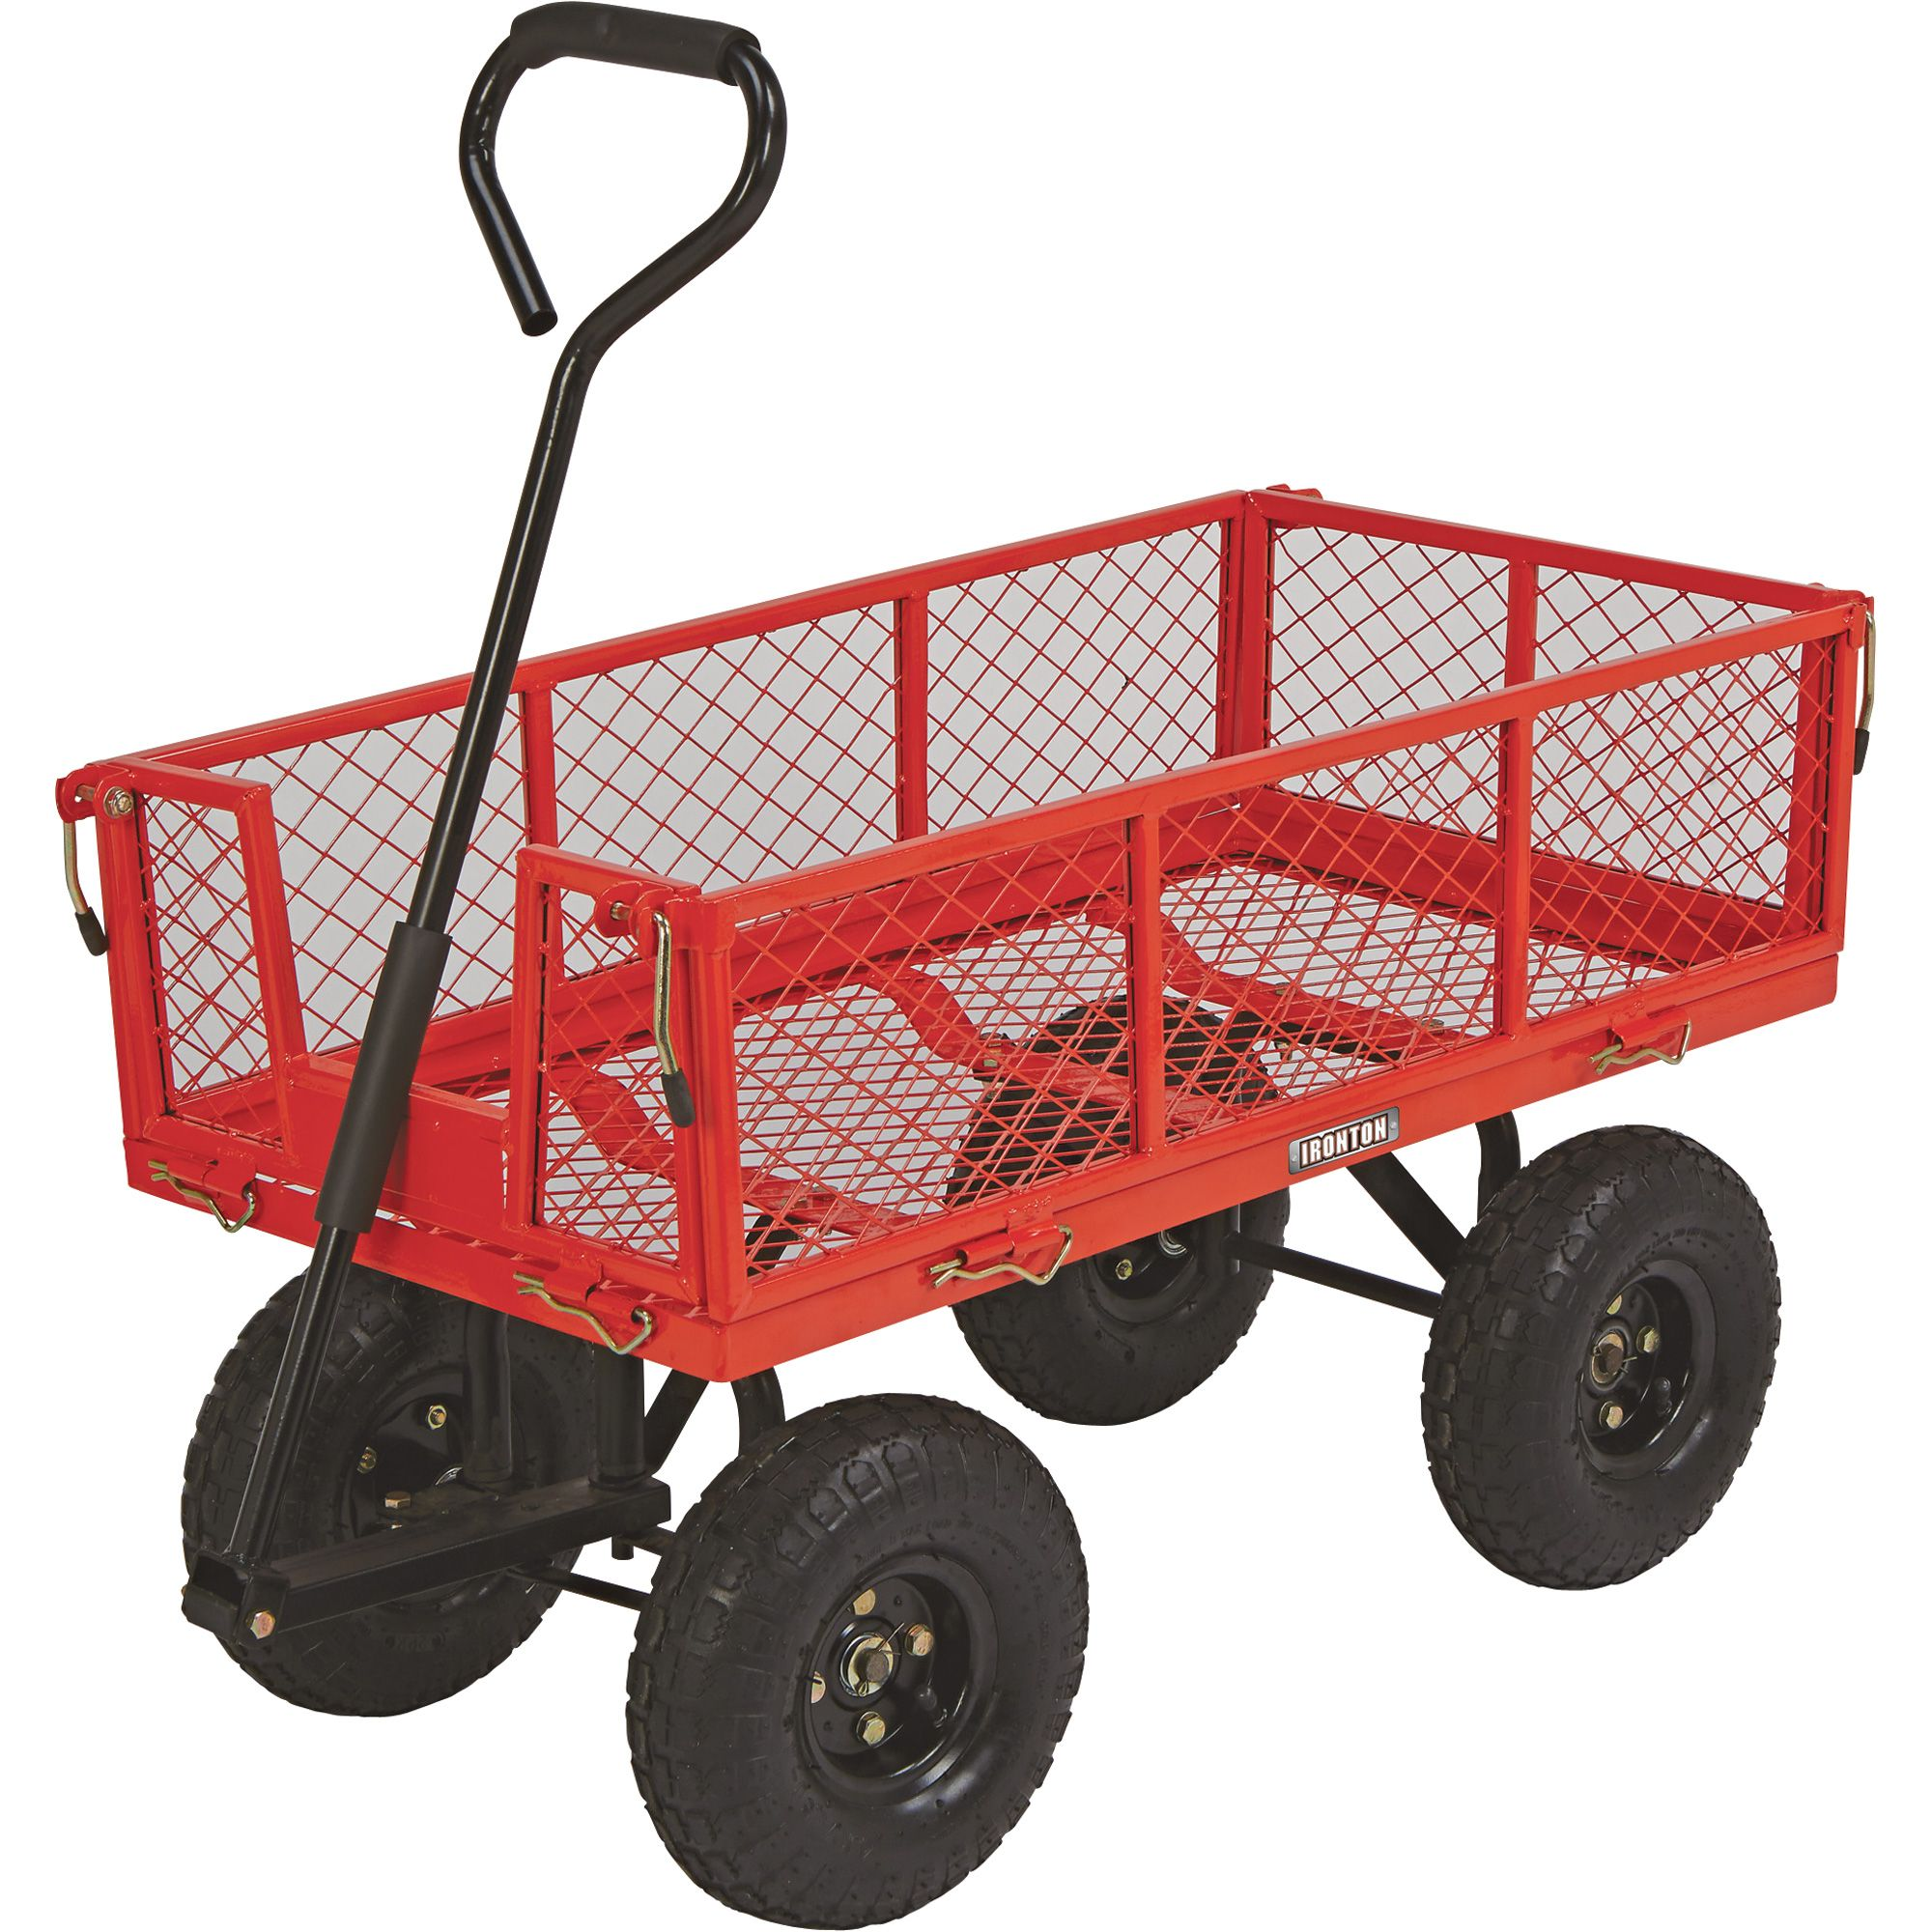 Perfect This Heavy Duty Ironton® Steel Garden Wagon Is Perfect For Hauling Garden  Supplies, Firewood And More. Features A Steel Mesh Deck With Folding  Removable ...